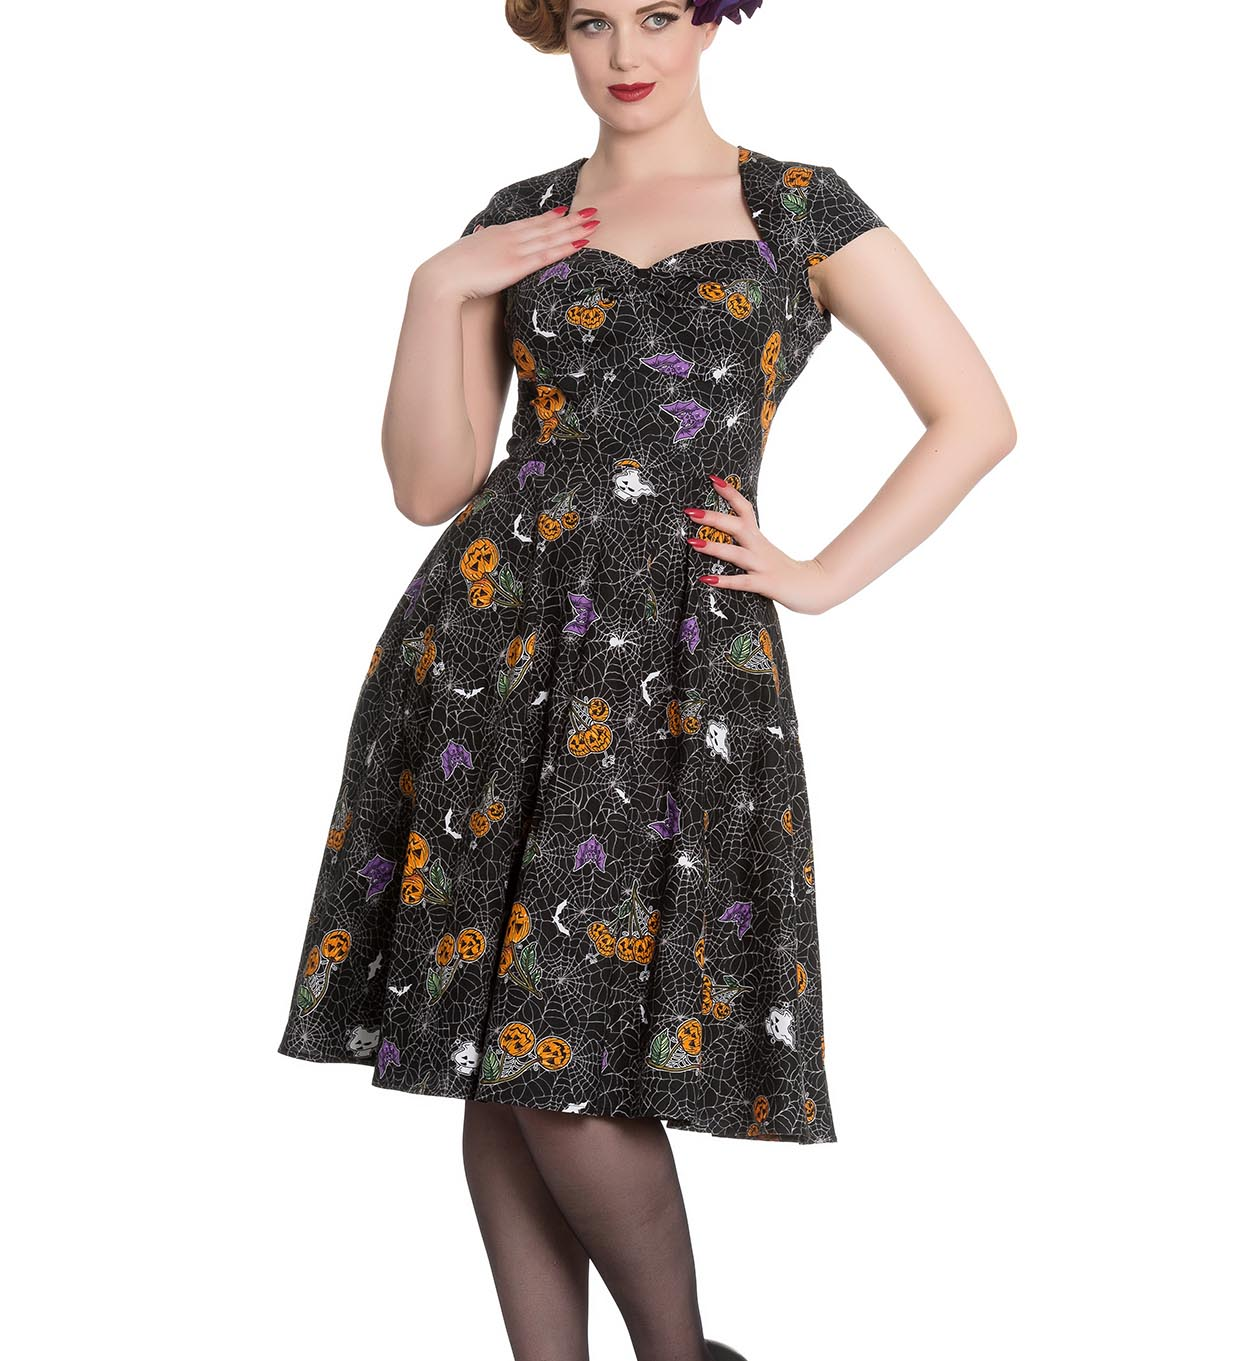 Hell-Bunny-Black-Pinup-50s-Goth-Webs-Dress-HARLOW-Halloween-All-Sizes thumbnail 3